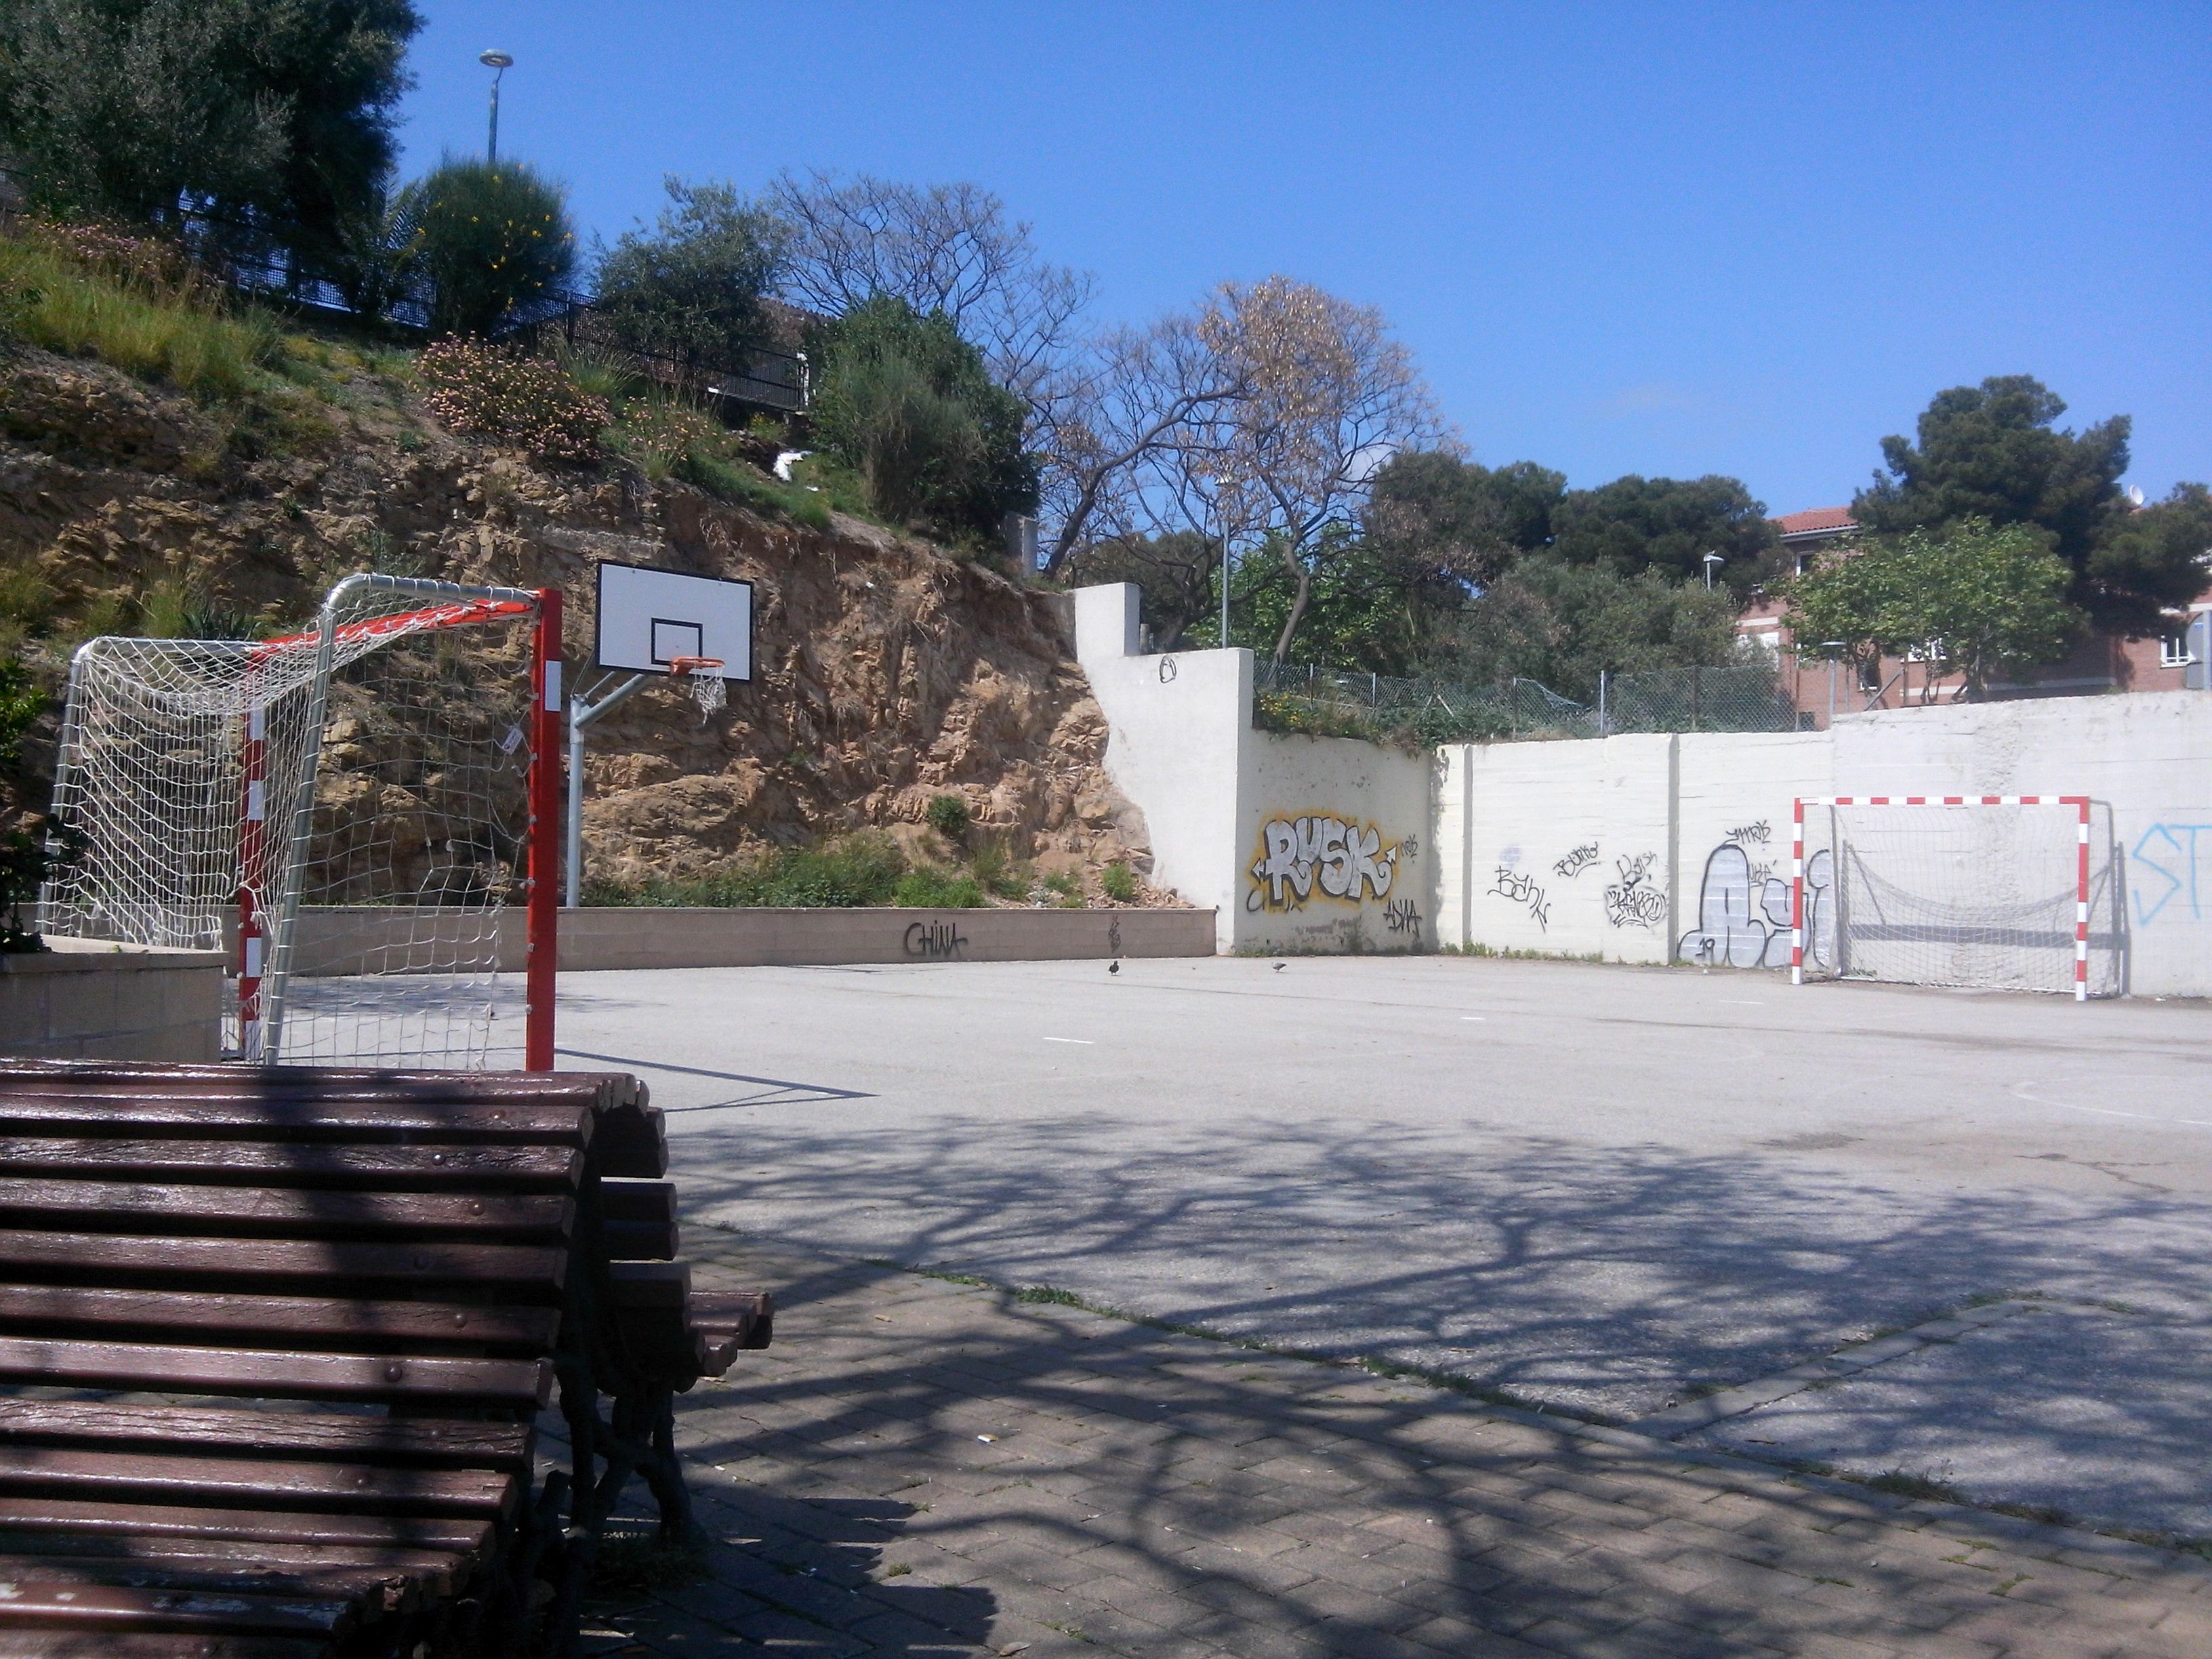 Basketballplatz